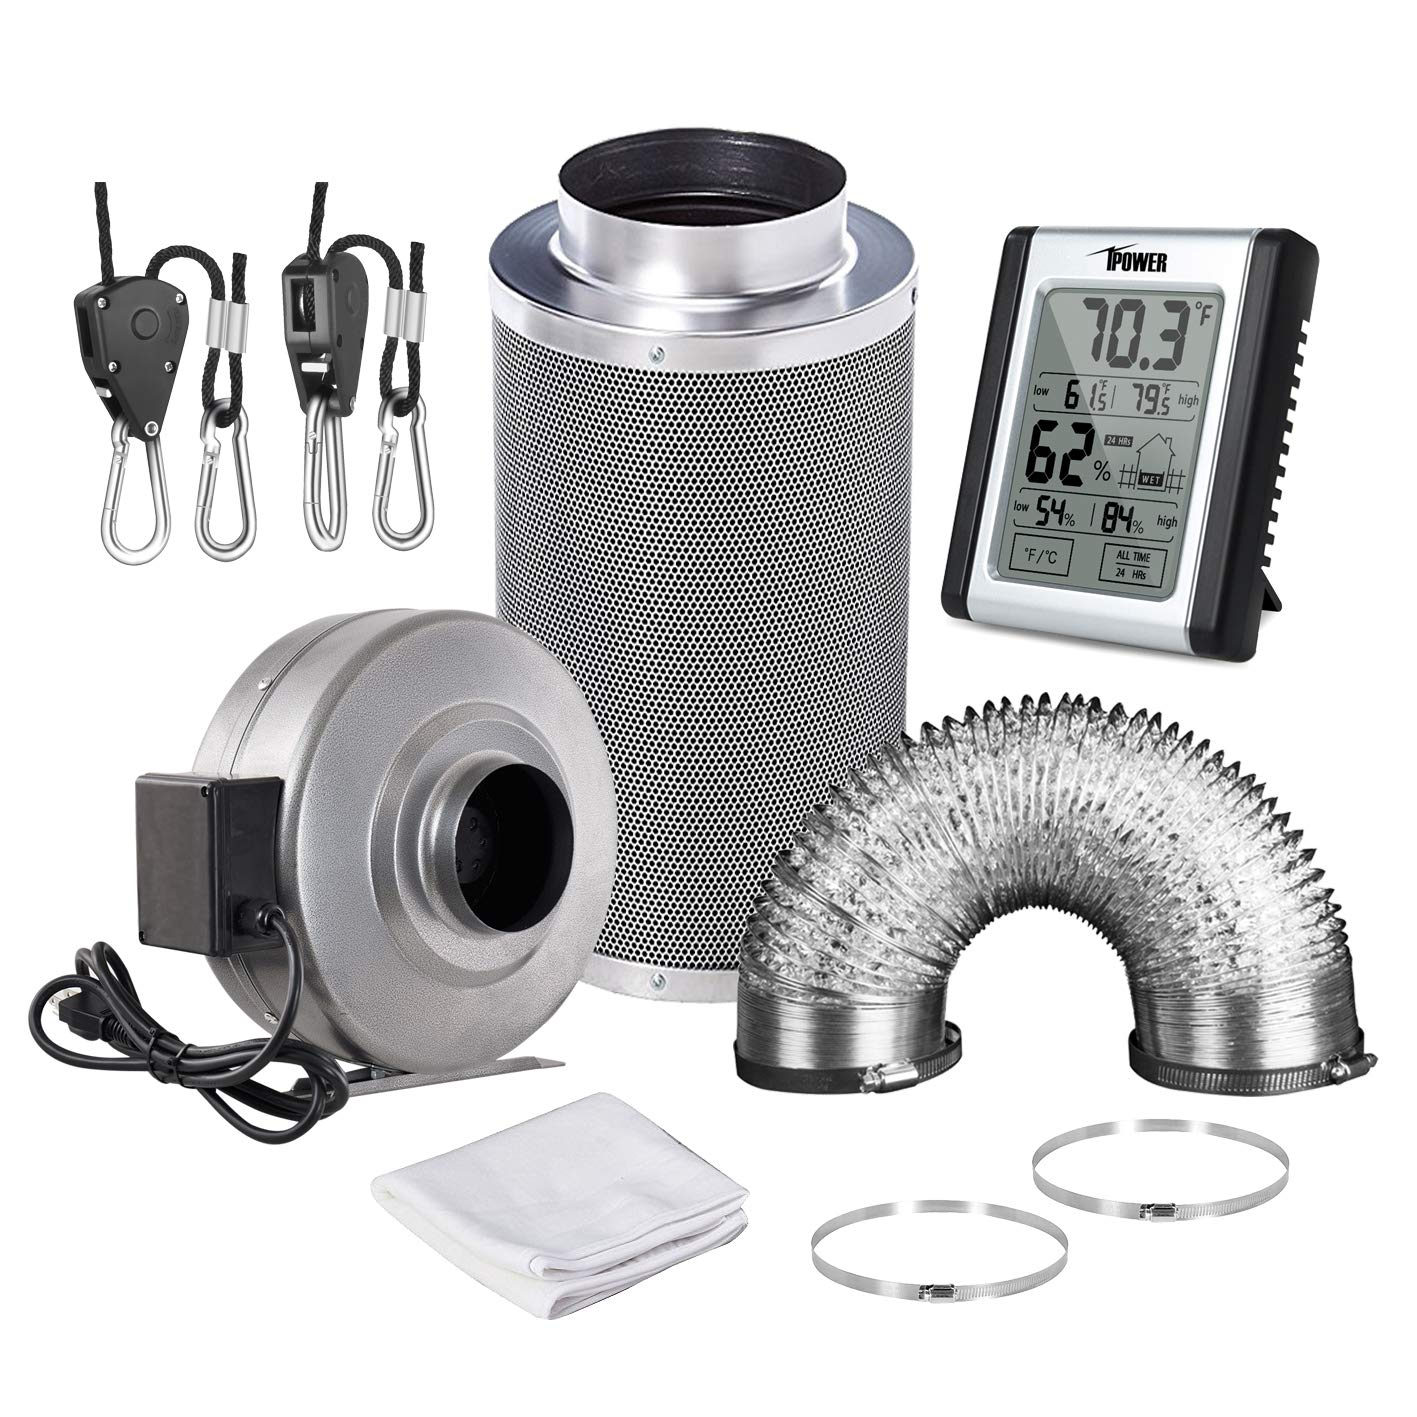 iPower GLFANXSETINLINE6D25RH 6 Inch 442 CFM Inline Fan Carbon Filter 25 Feet Ducting Combo with Humidity Monitor Grow Tent Ventilation, Grey by iPower